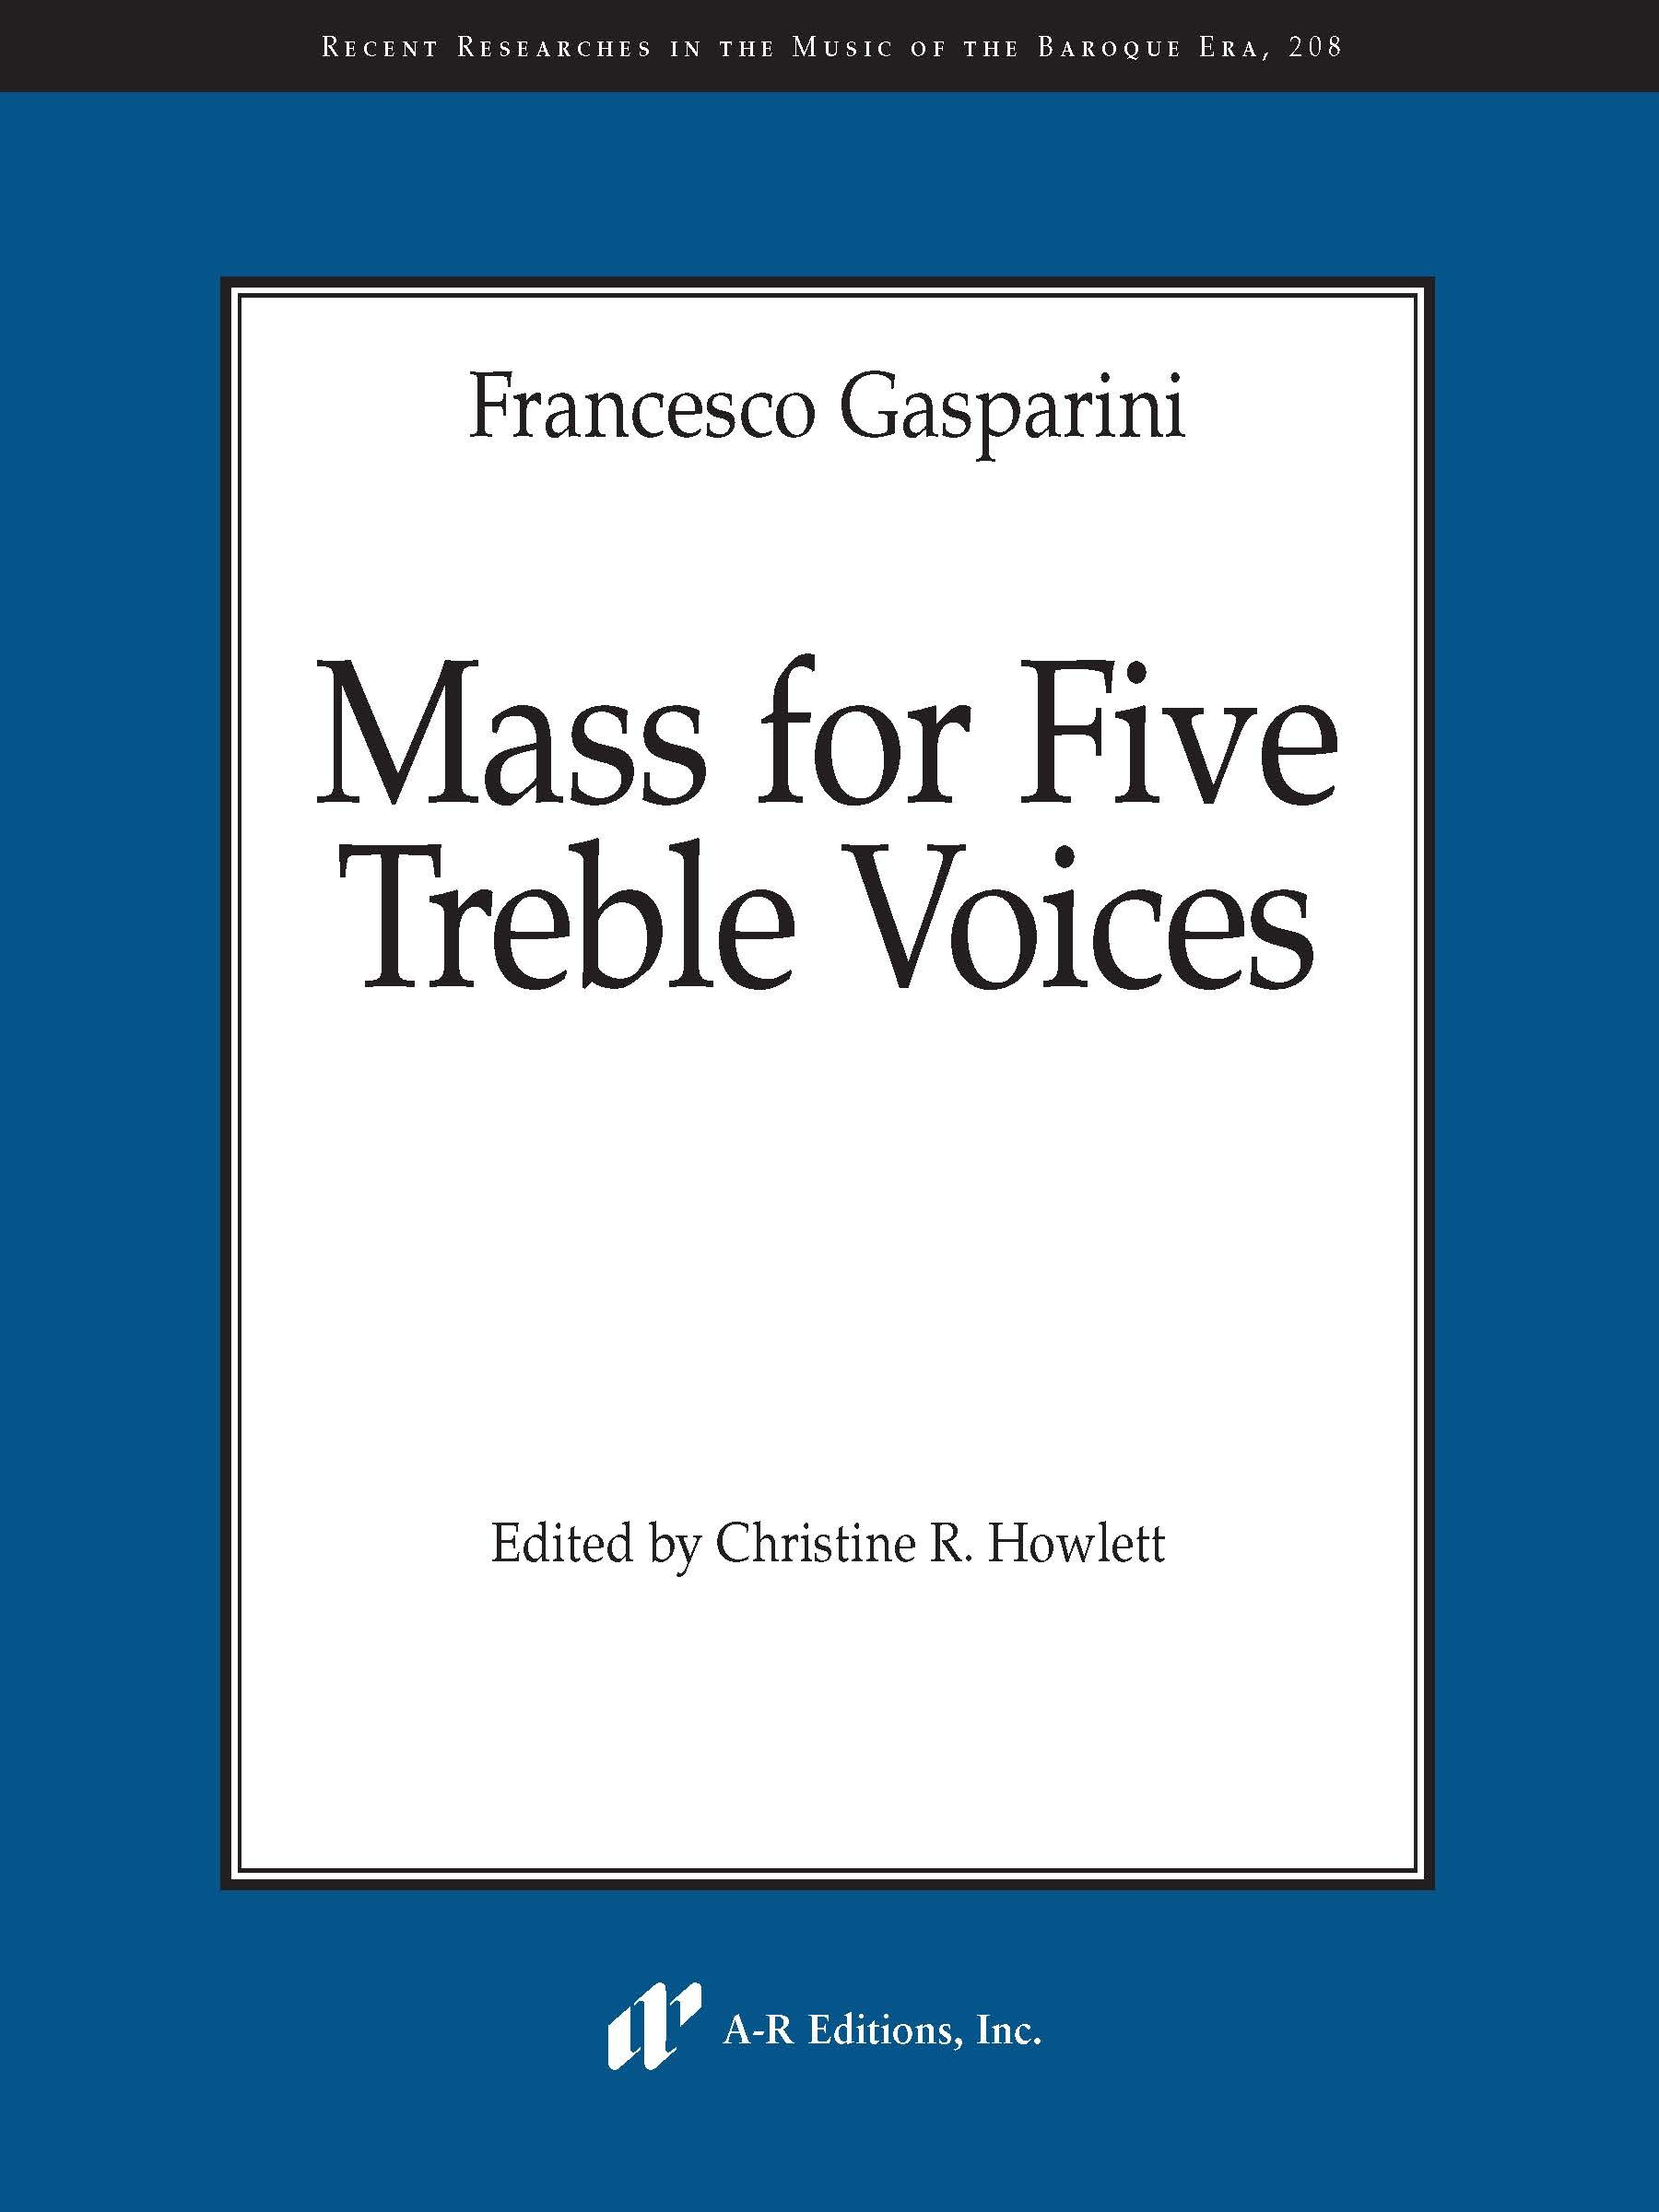 Gasparini: Mass for Five Treble Voices